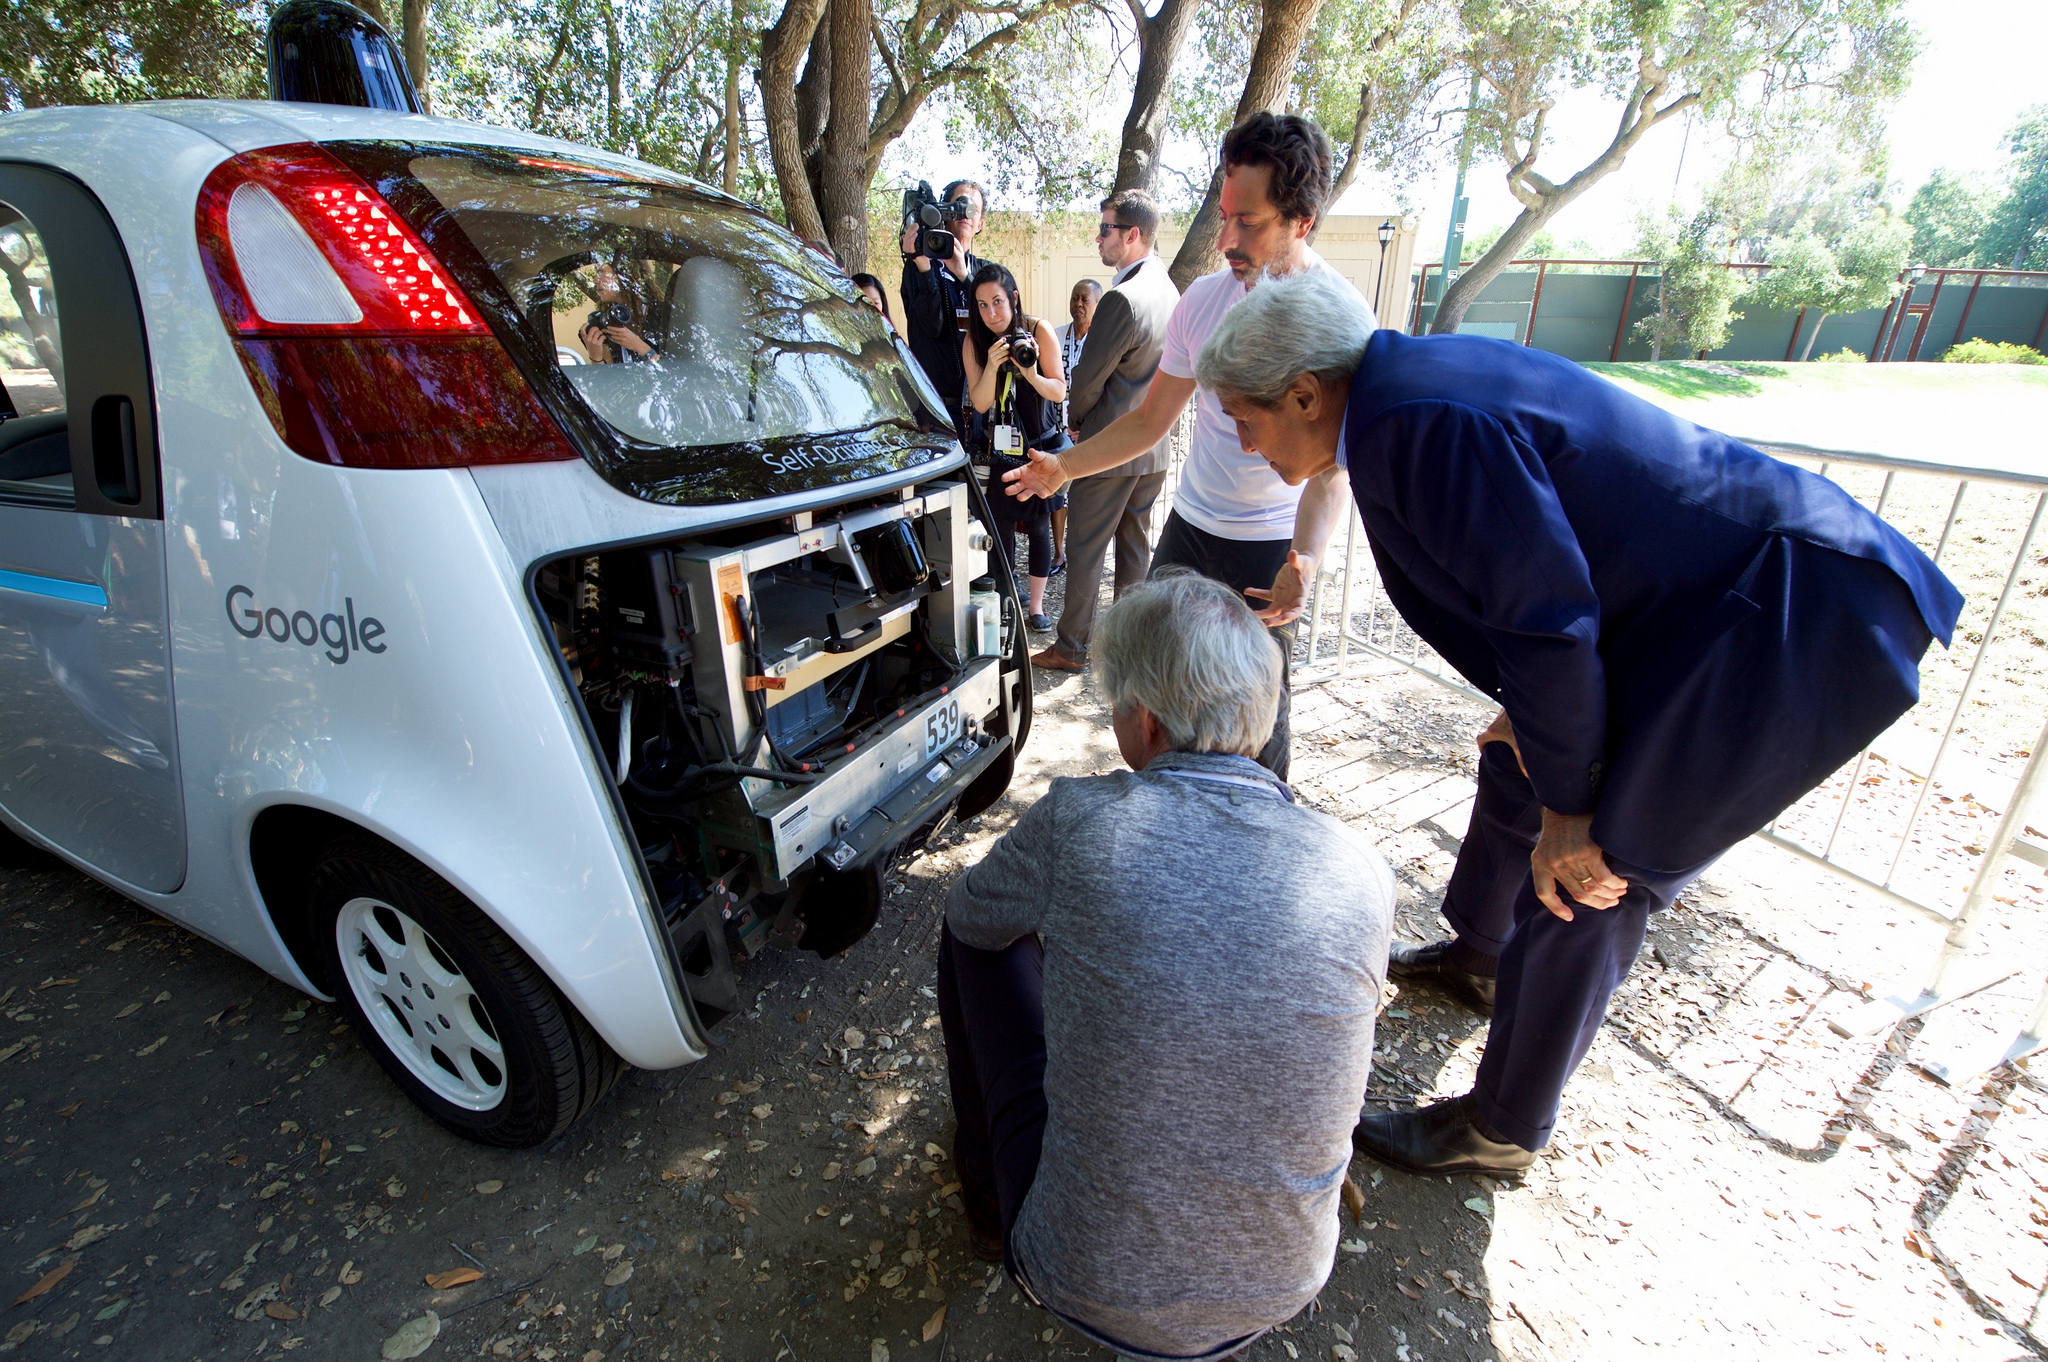 Google co-founder Sergey Brin show U.S. Secretary of State John Kerry the computers inside one of Google's self-driving cars at the 2016 Global Entrepreneurship's Innovation Marketplace on the campus of Stanford University in Palo Alto, California, on June 23, 2016.